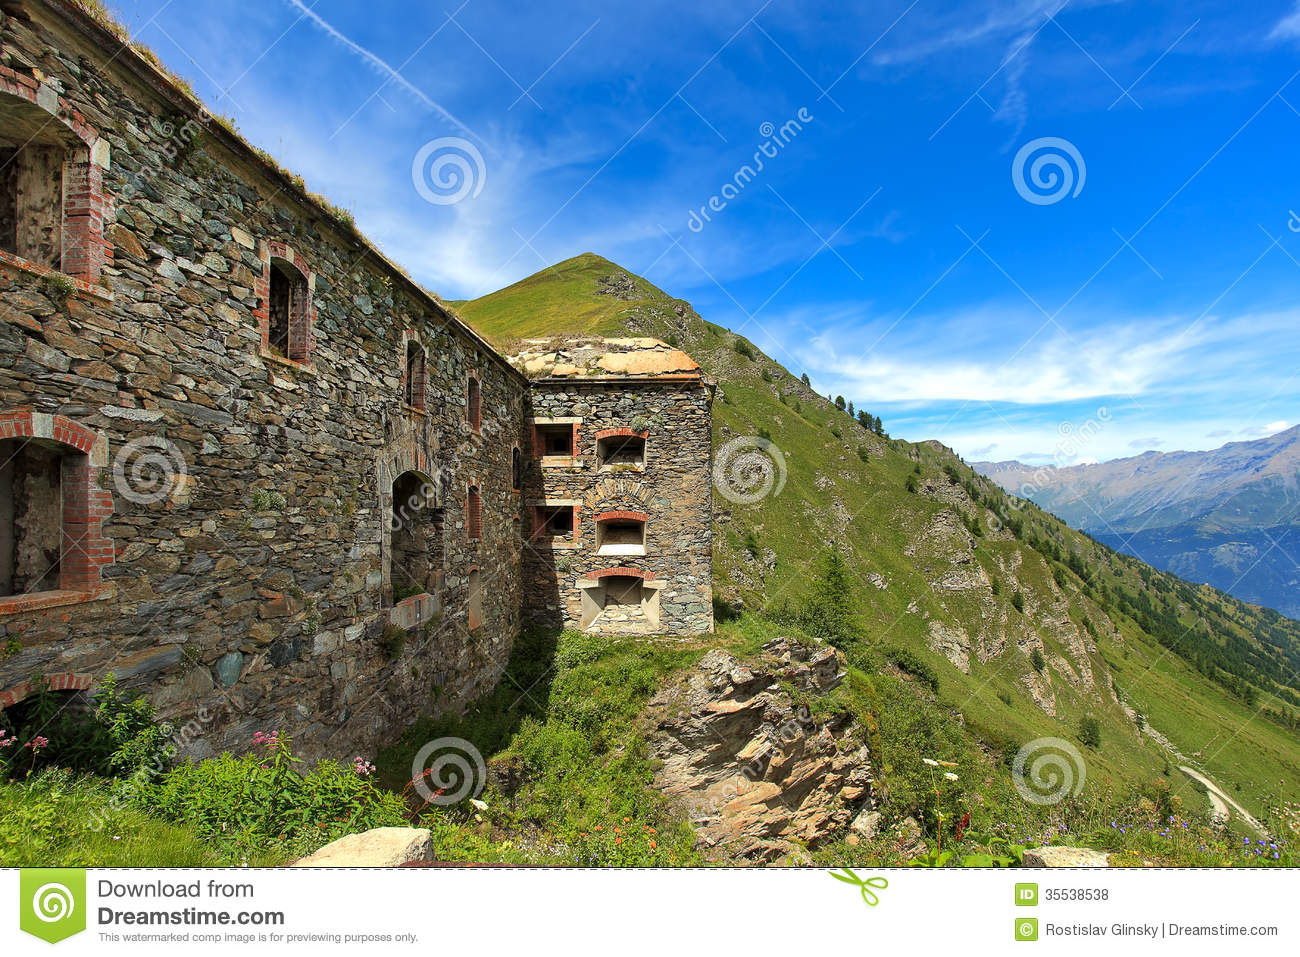 Abandoned Military Fortress In The Mountains. Royalty Free Stock.